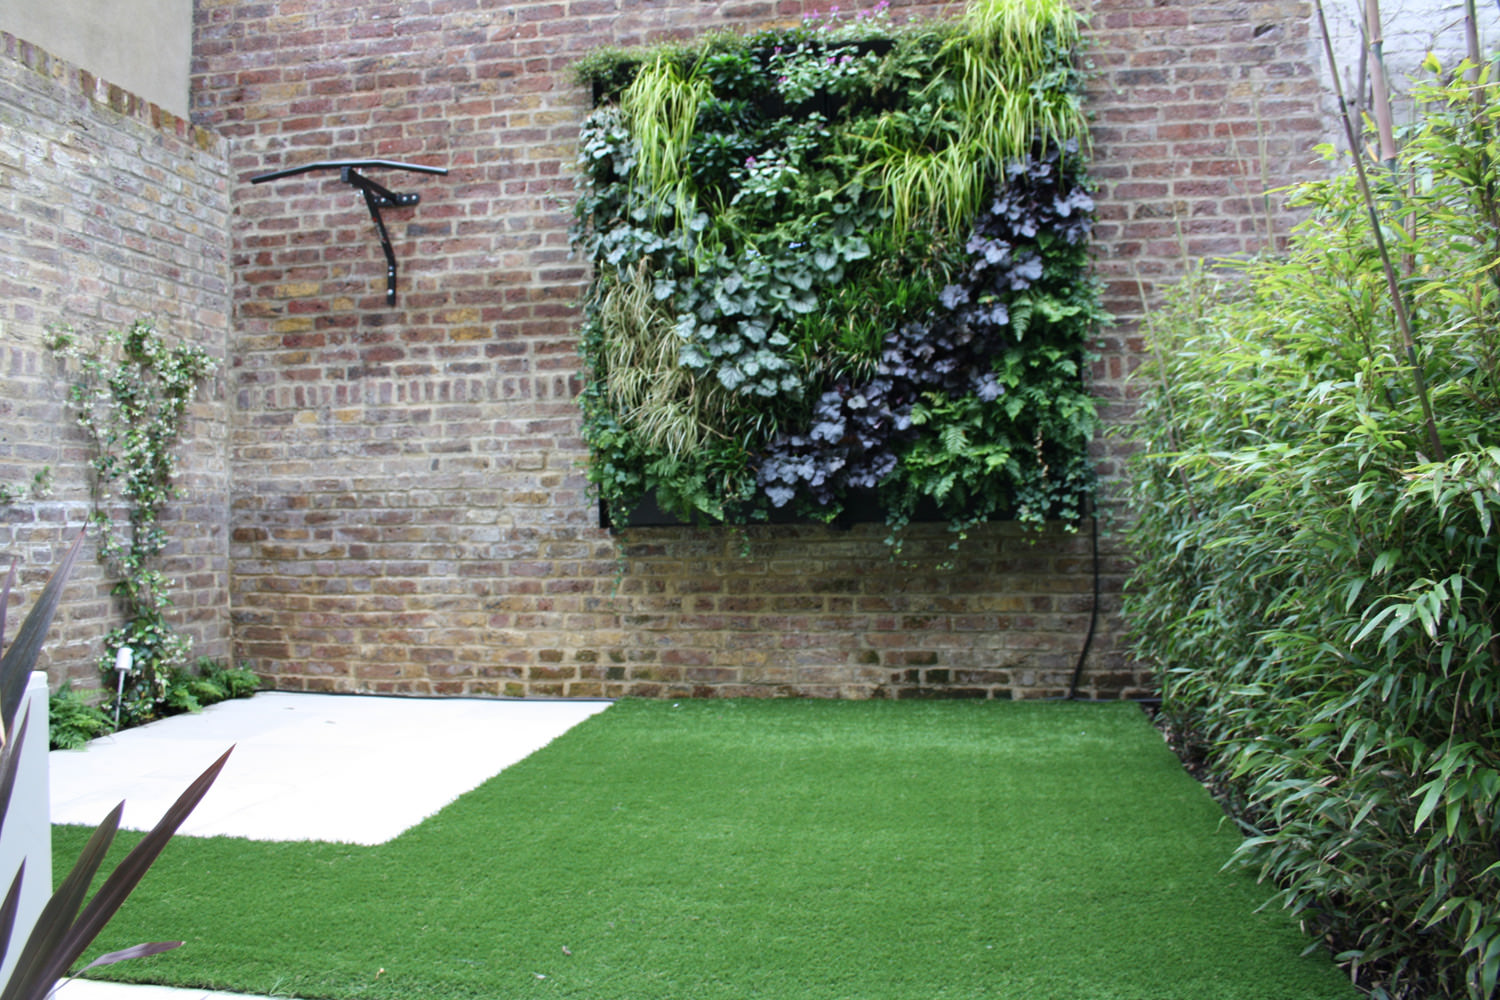 Top 10 london garden designs garden club london for Garden plans for small gardens